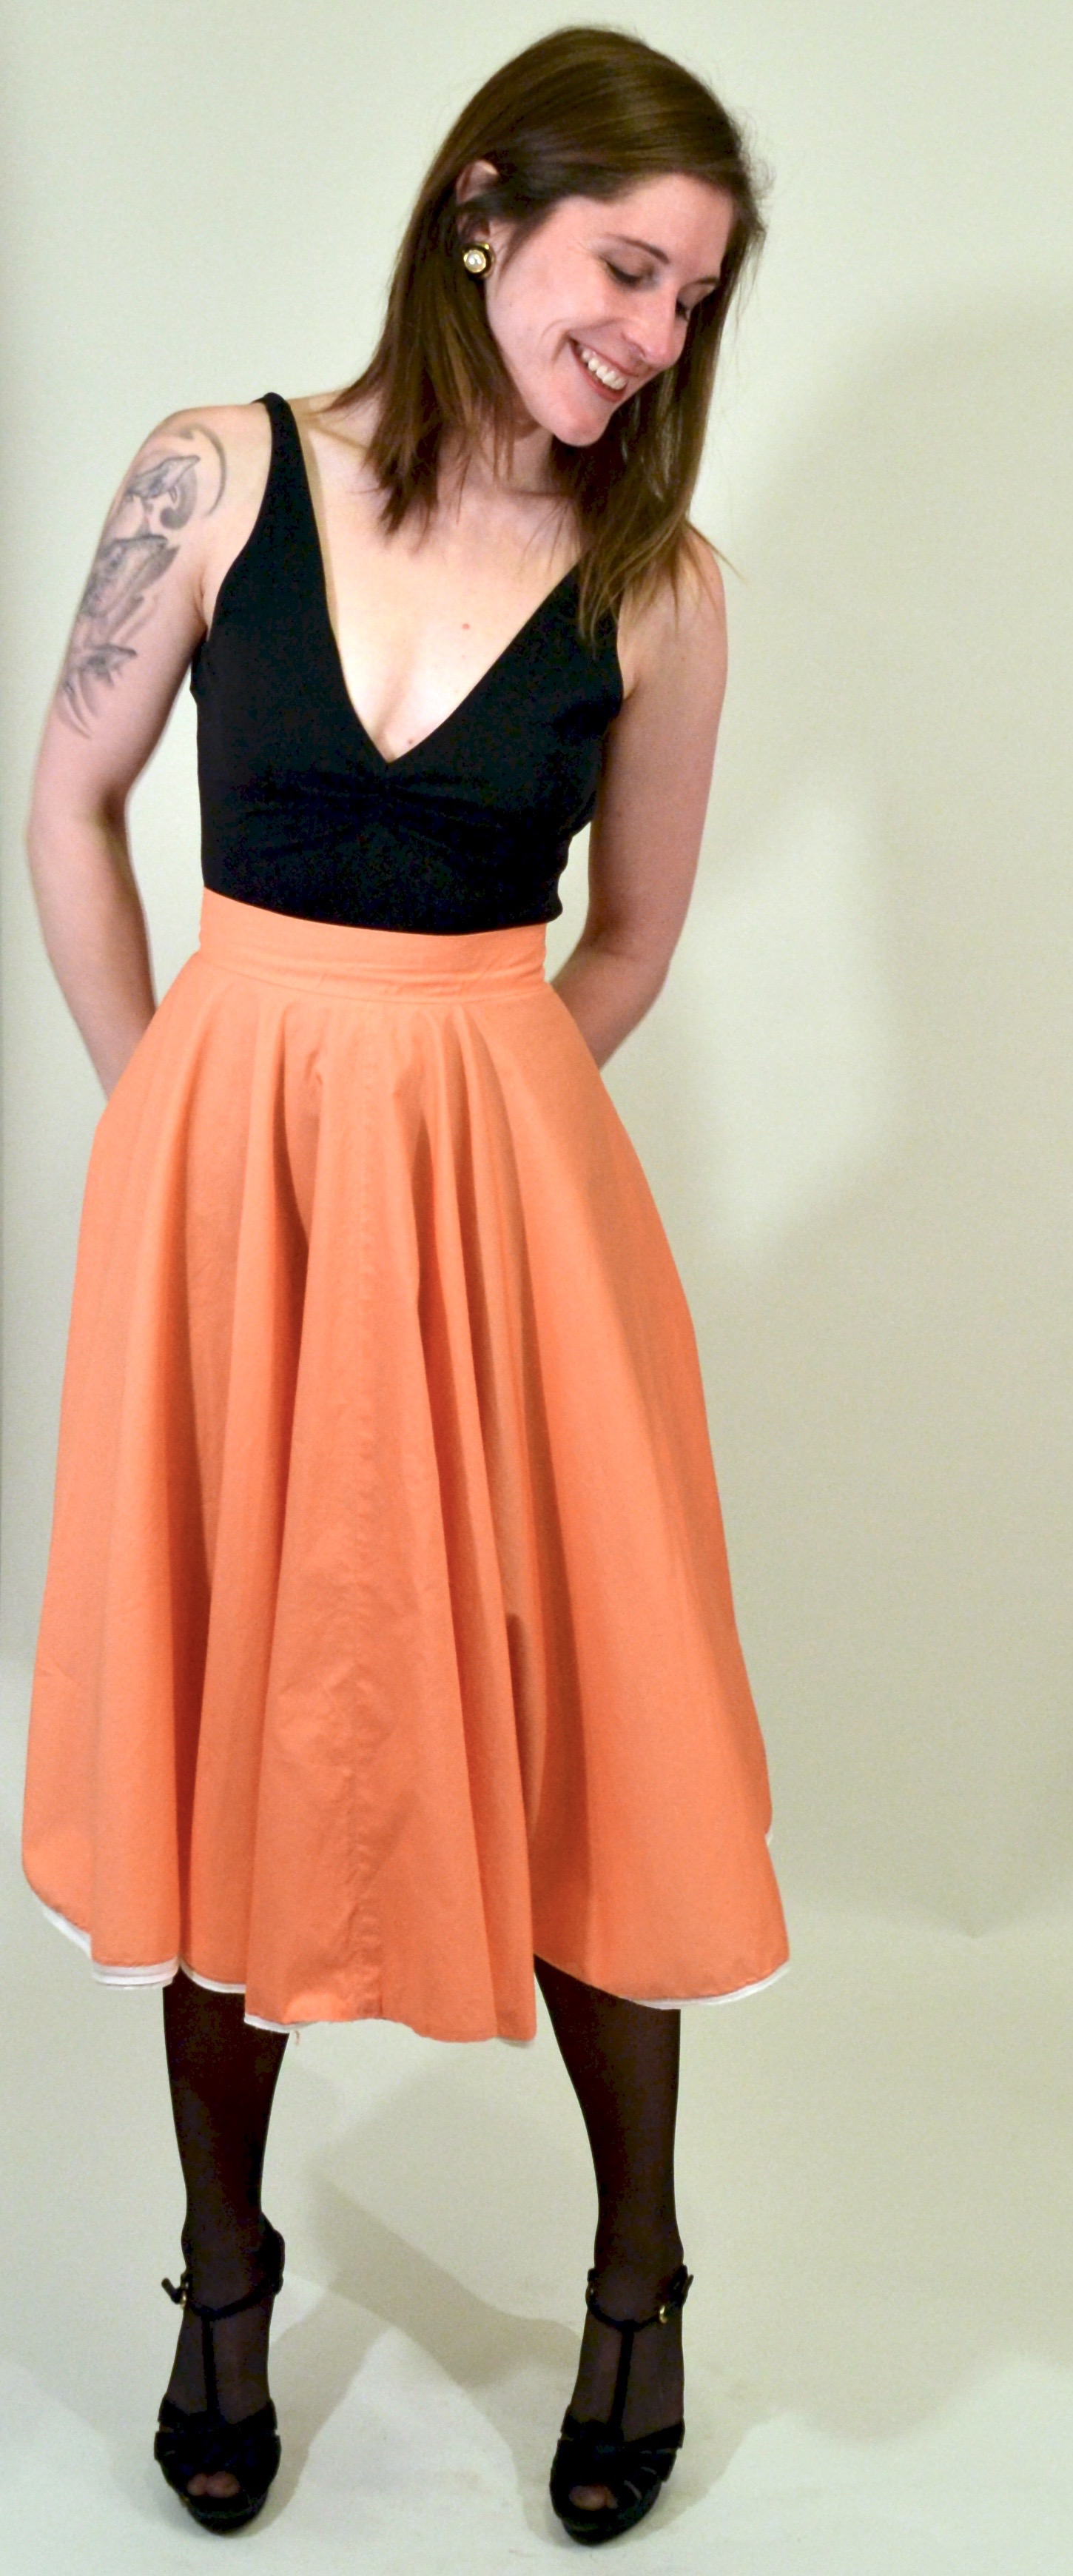 The Maria Handmade Skirt